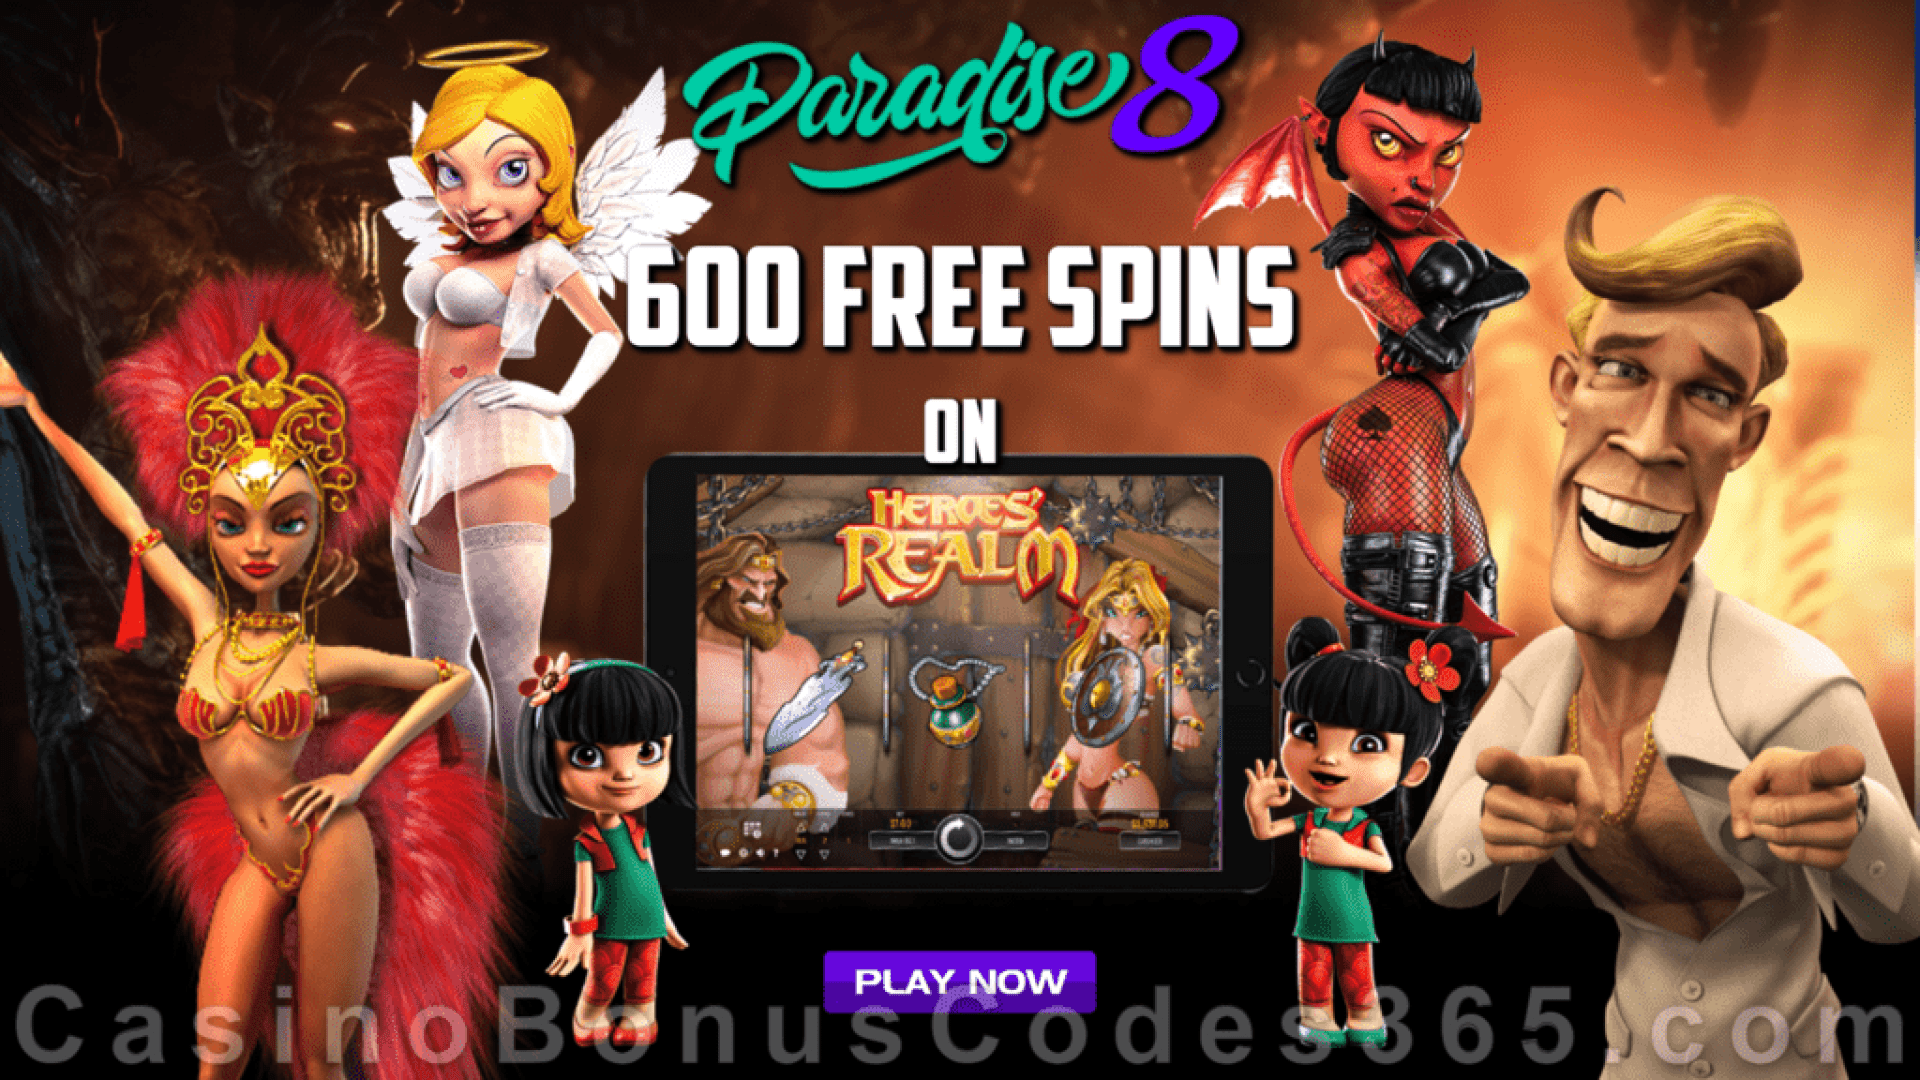 Paradise 8 5 FREE Spins for 365 Days Mega Offer Heroes' Realm Rival Gaming Game Special Deal